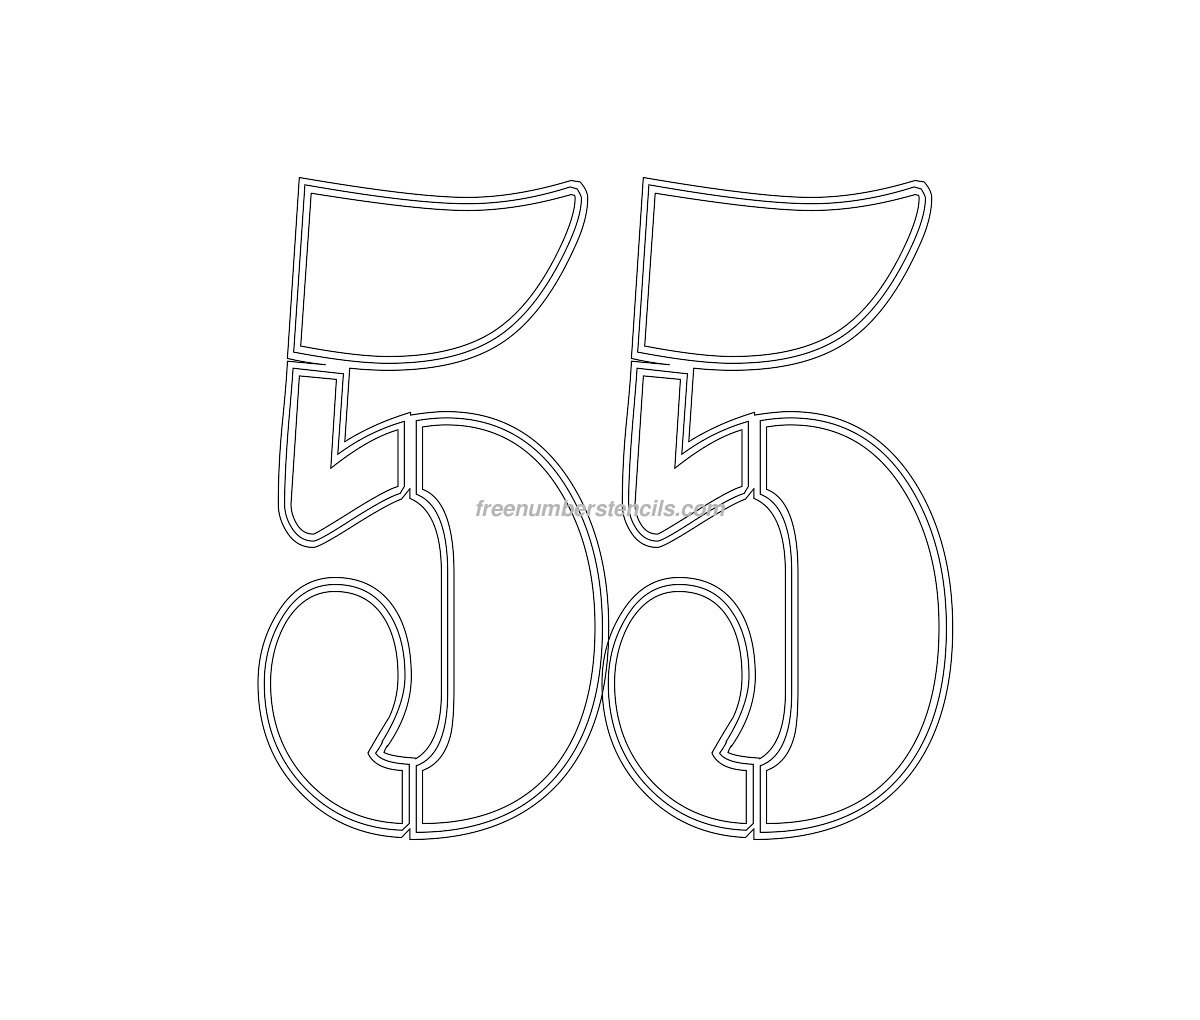 free military 55 number stencil